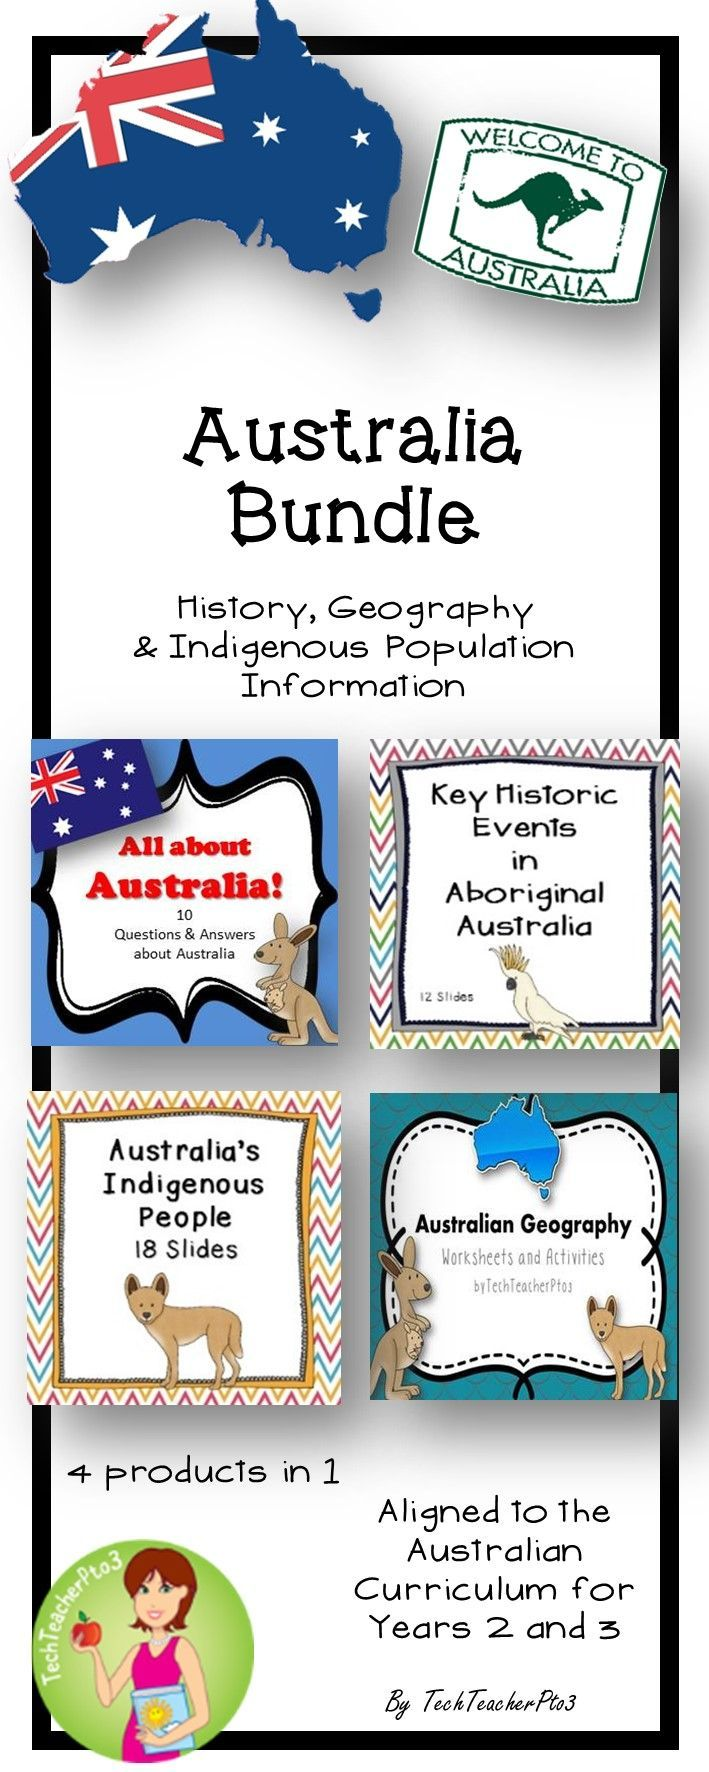 Australia Bundle - History, Geography and Indigenous Population Information. Worksheets, Information Slides and Activities aligned to the Australian curriculum for Years 2 and 3.